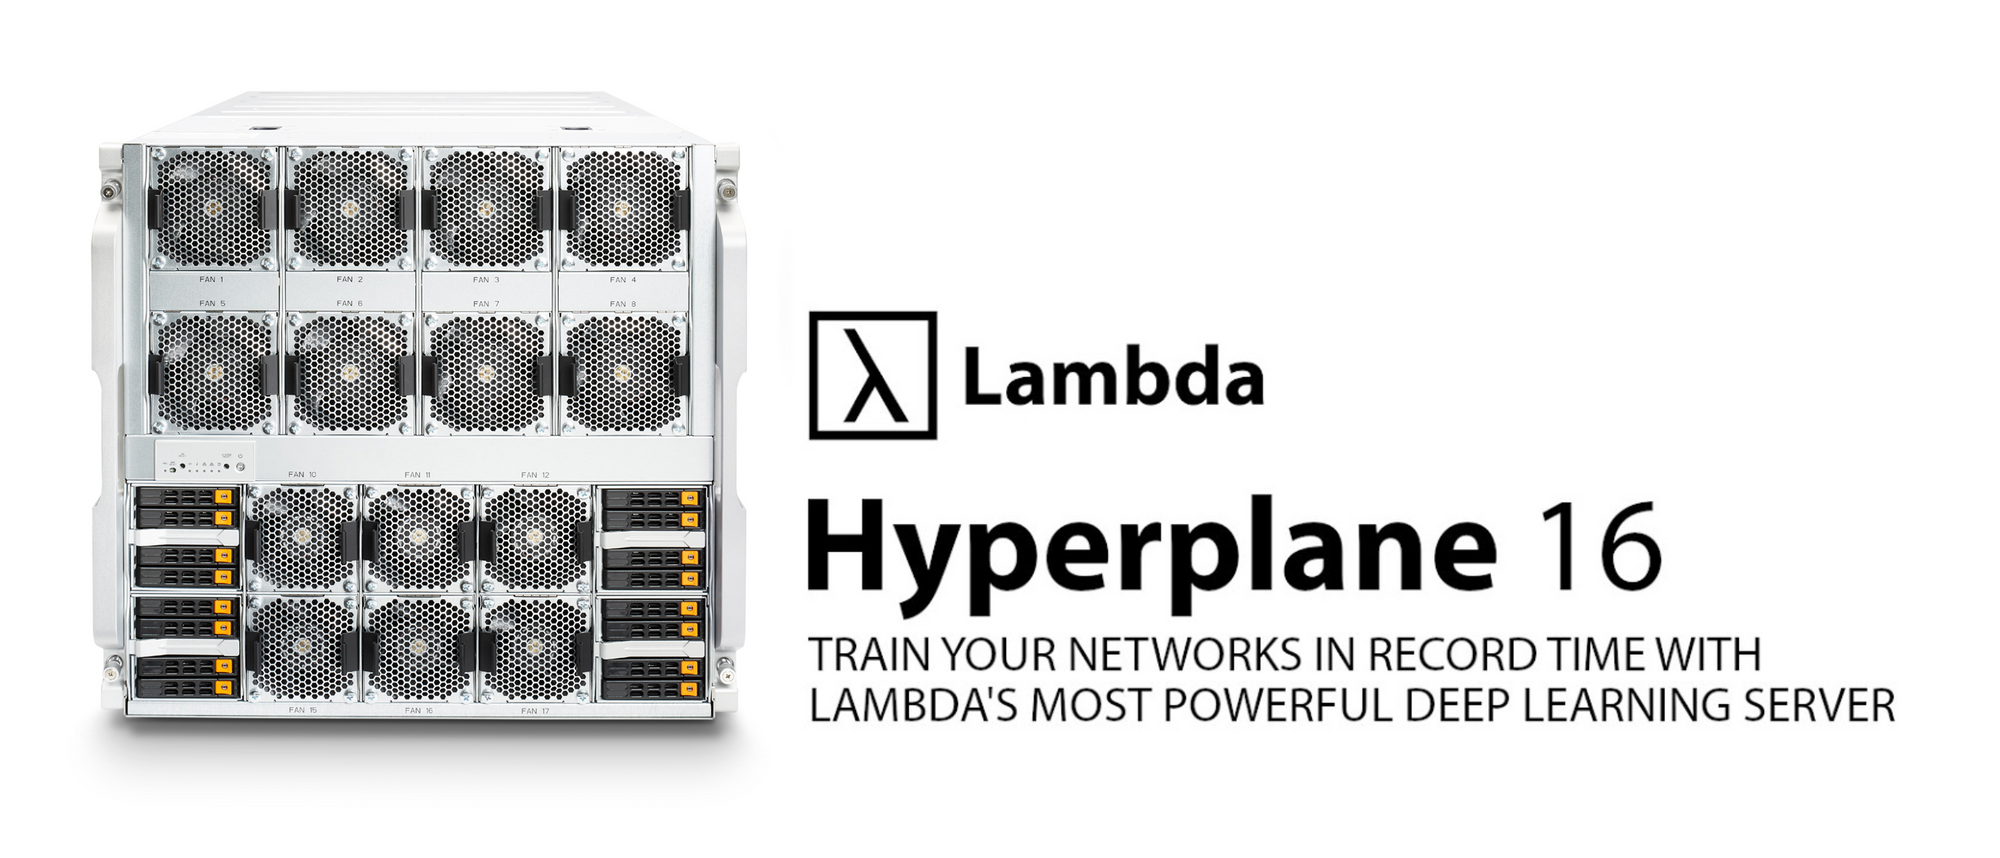 Header image: Train you networks in record time with Lambda's most powerful deep learning server.